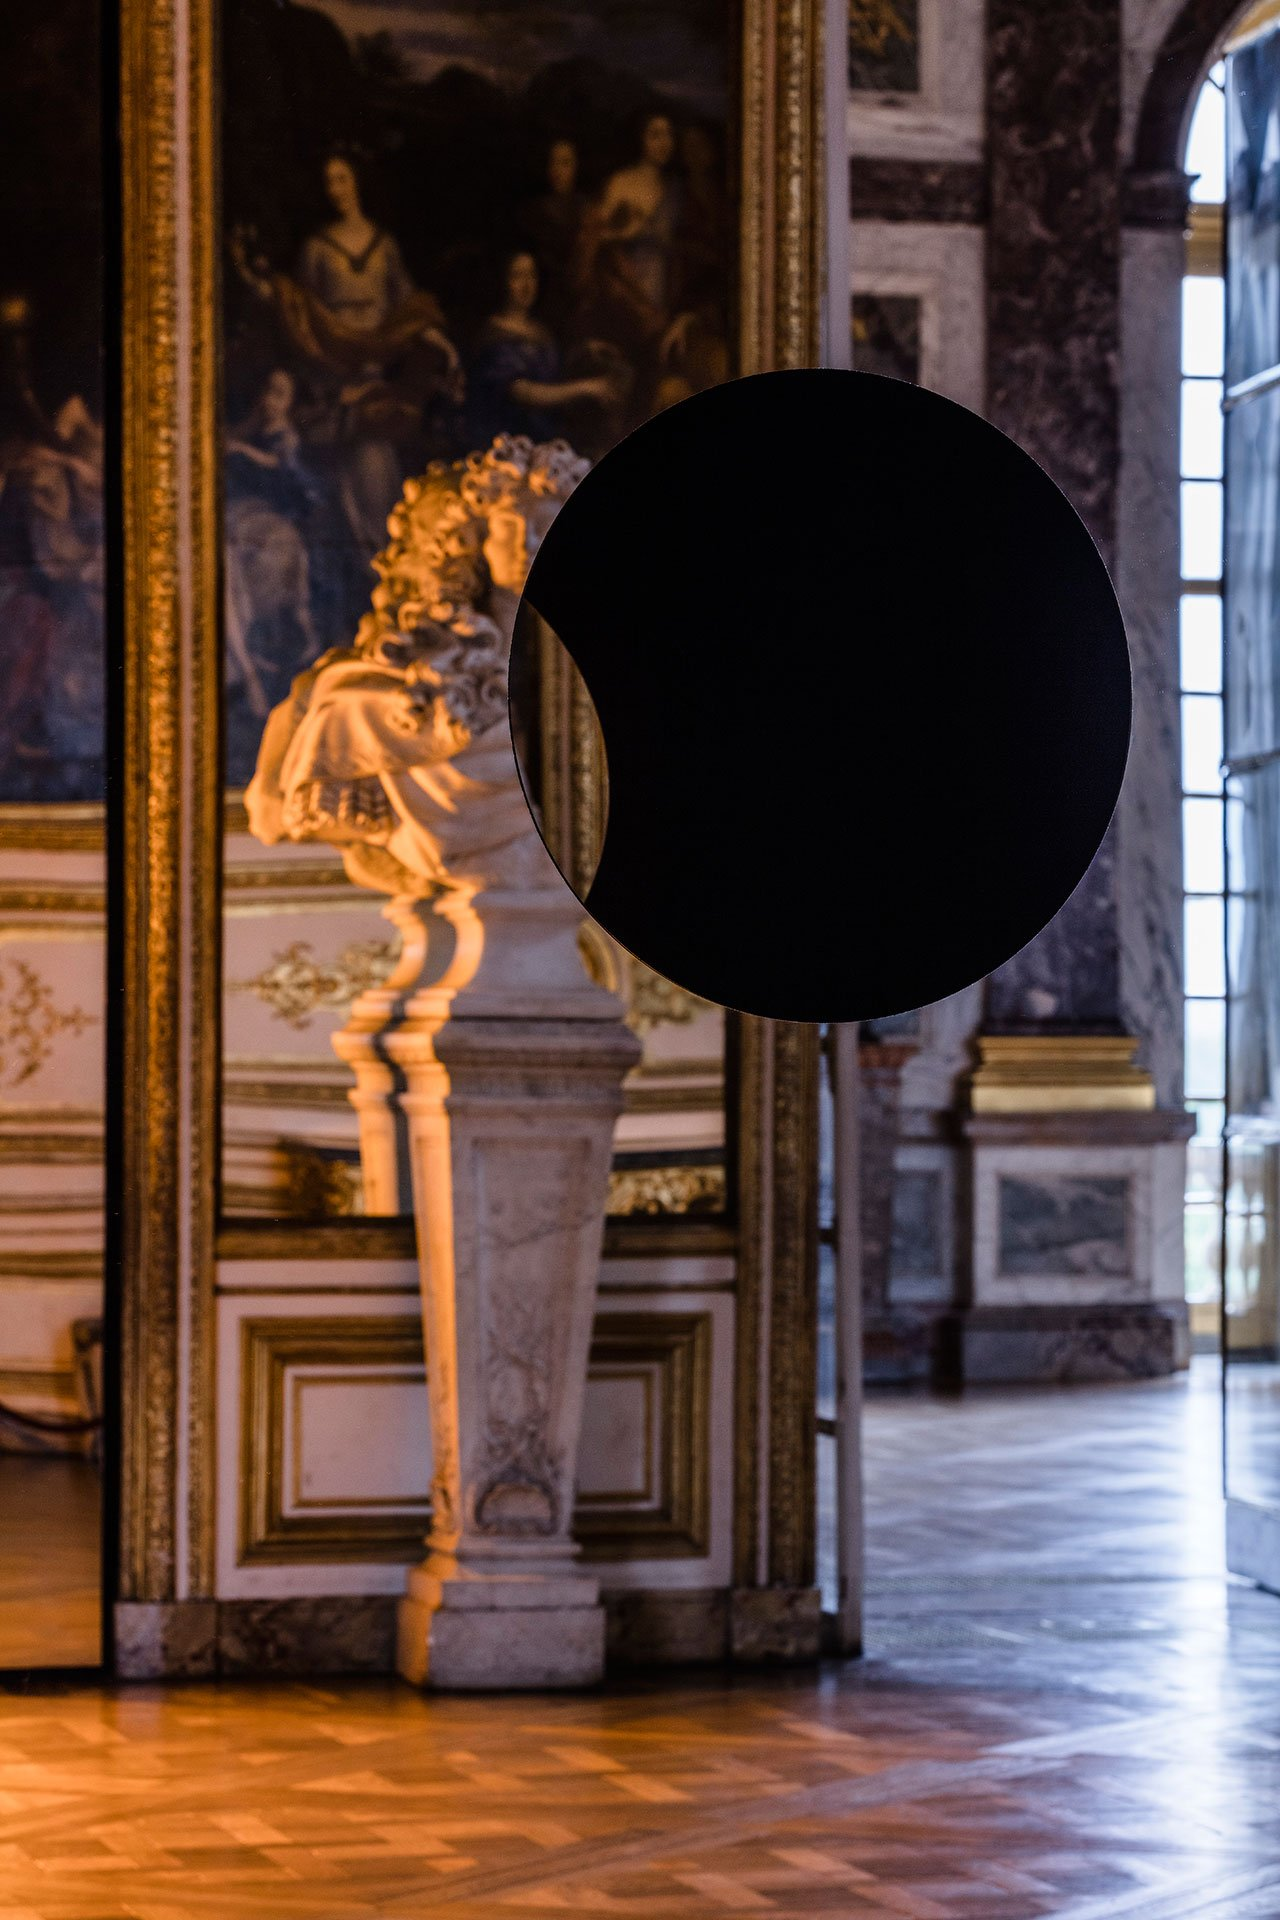 Olafur Eliasson, Deep mirror (black), 2016. Mirrors, alluminium, steel, wood, paint (black). 300 x 141 x 80 cm.  Palace of Versailles, 2016. Photo by Anders Sune Berg. Courtesy the artist; neugerriemschneider, Berlin; Tanya Bonakdar Gallery, New York © Olafur Eliasson.